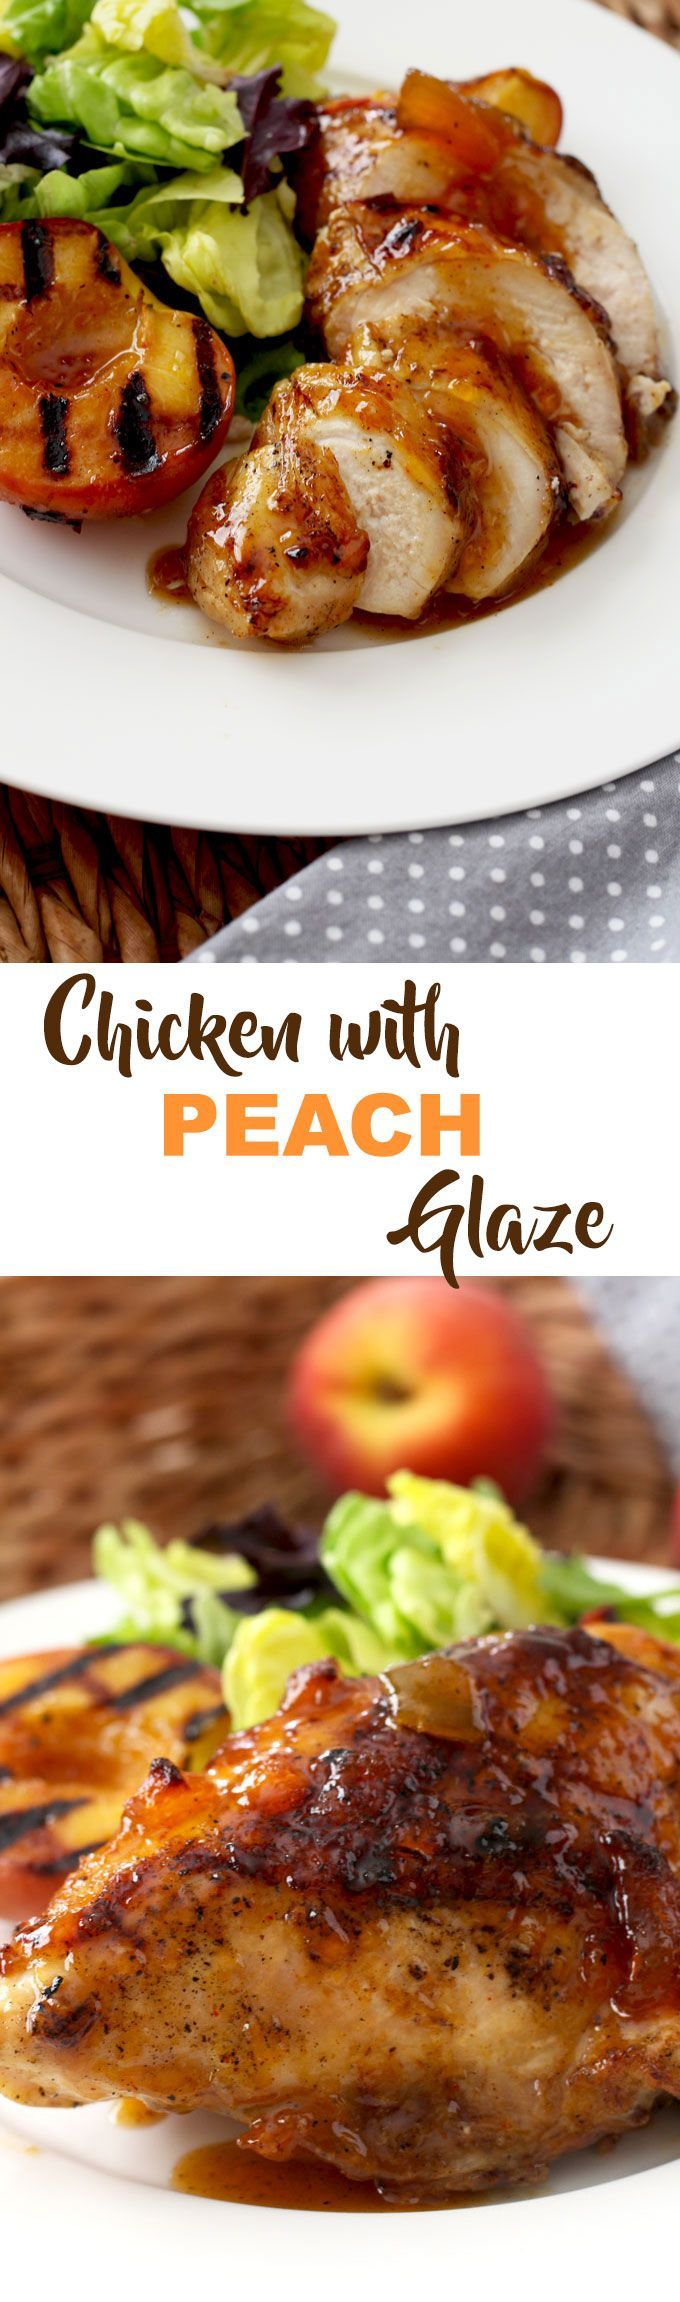 Sticky and sweet with a bit of spice this Chicken with Peach Glaze is easy to make and finger licking good! by Lemonblossoms.com